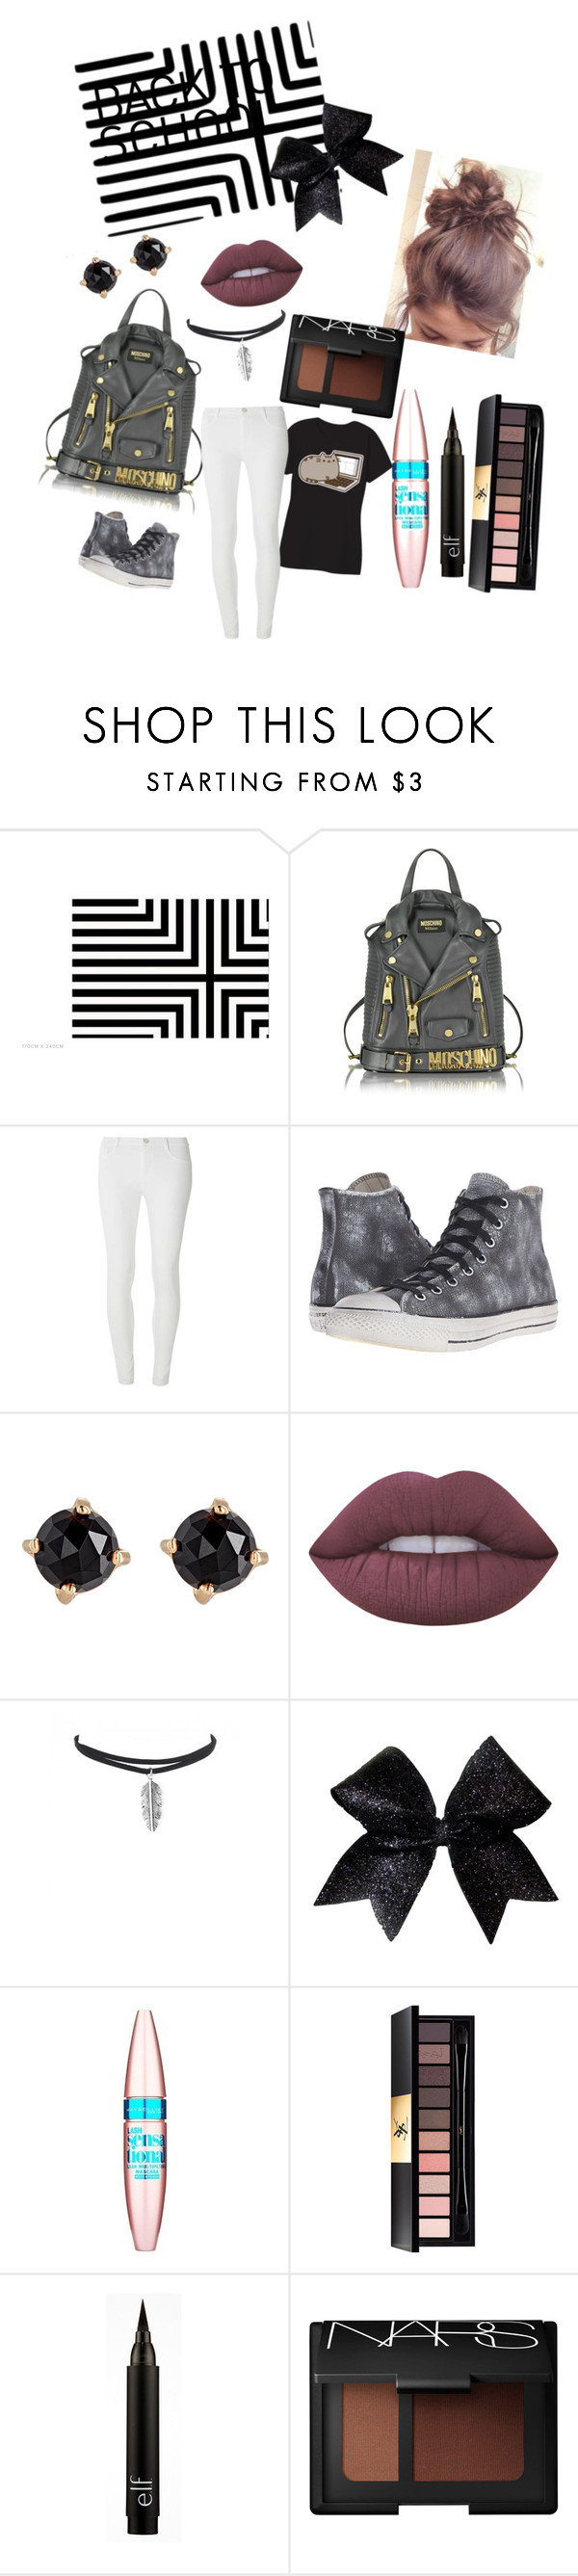 """""""Back to school"""" by pedlight ❤ liked on Polyvore featuring Moschino, Pusheen, Dorothy Perkins, Converse, Irene Neuwirth, Lime Crime, Maybelline, Yves Saint Laurent and NARS Cosmetics"""